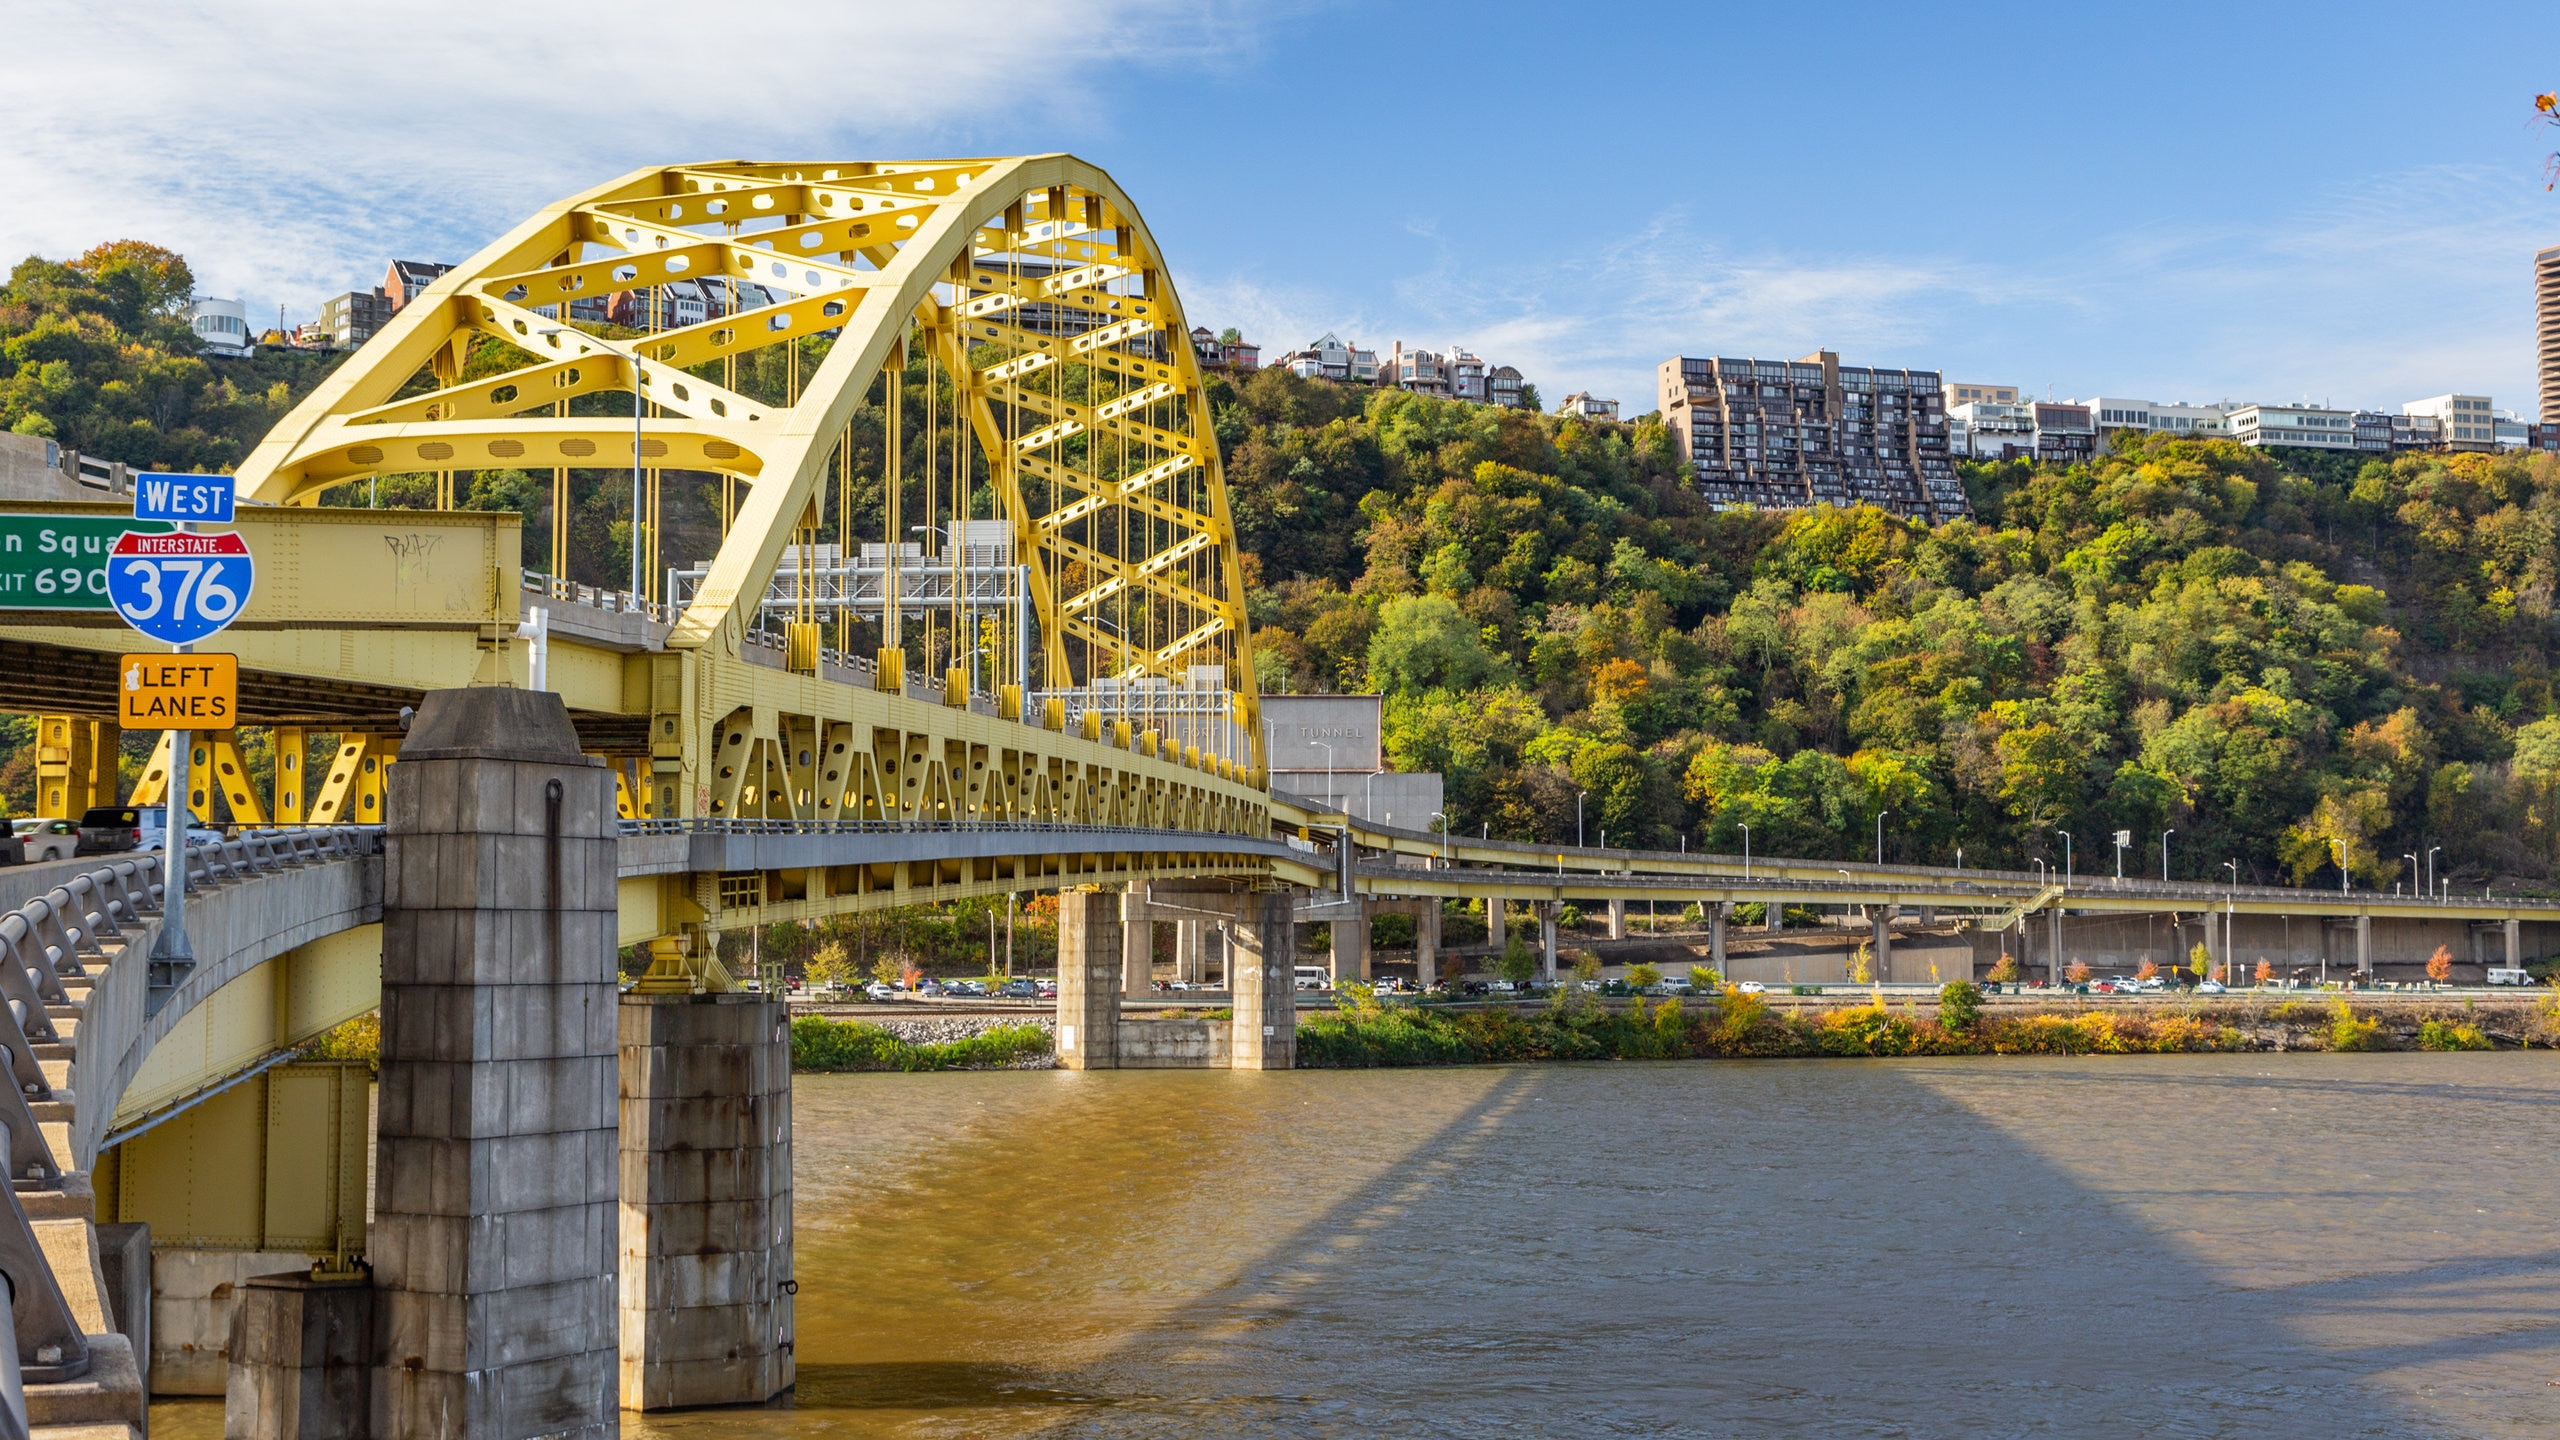 Downtown Pittsburgh, Pittsburgh, Pennsylvania, United States of America